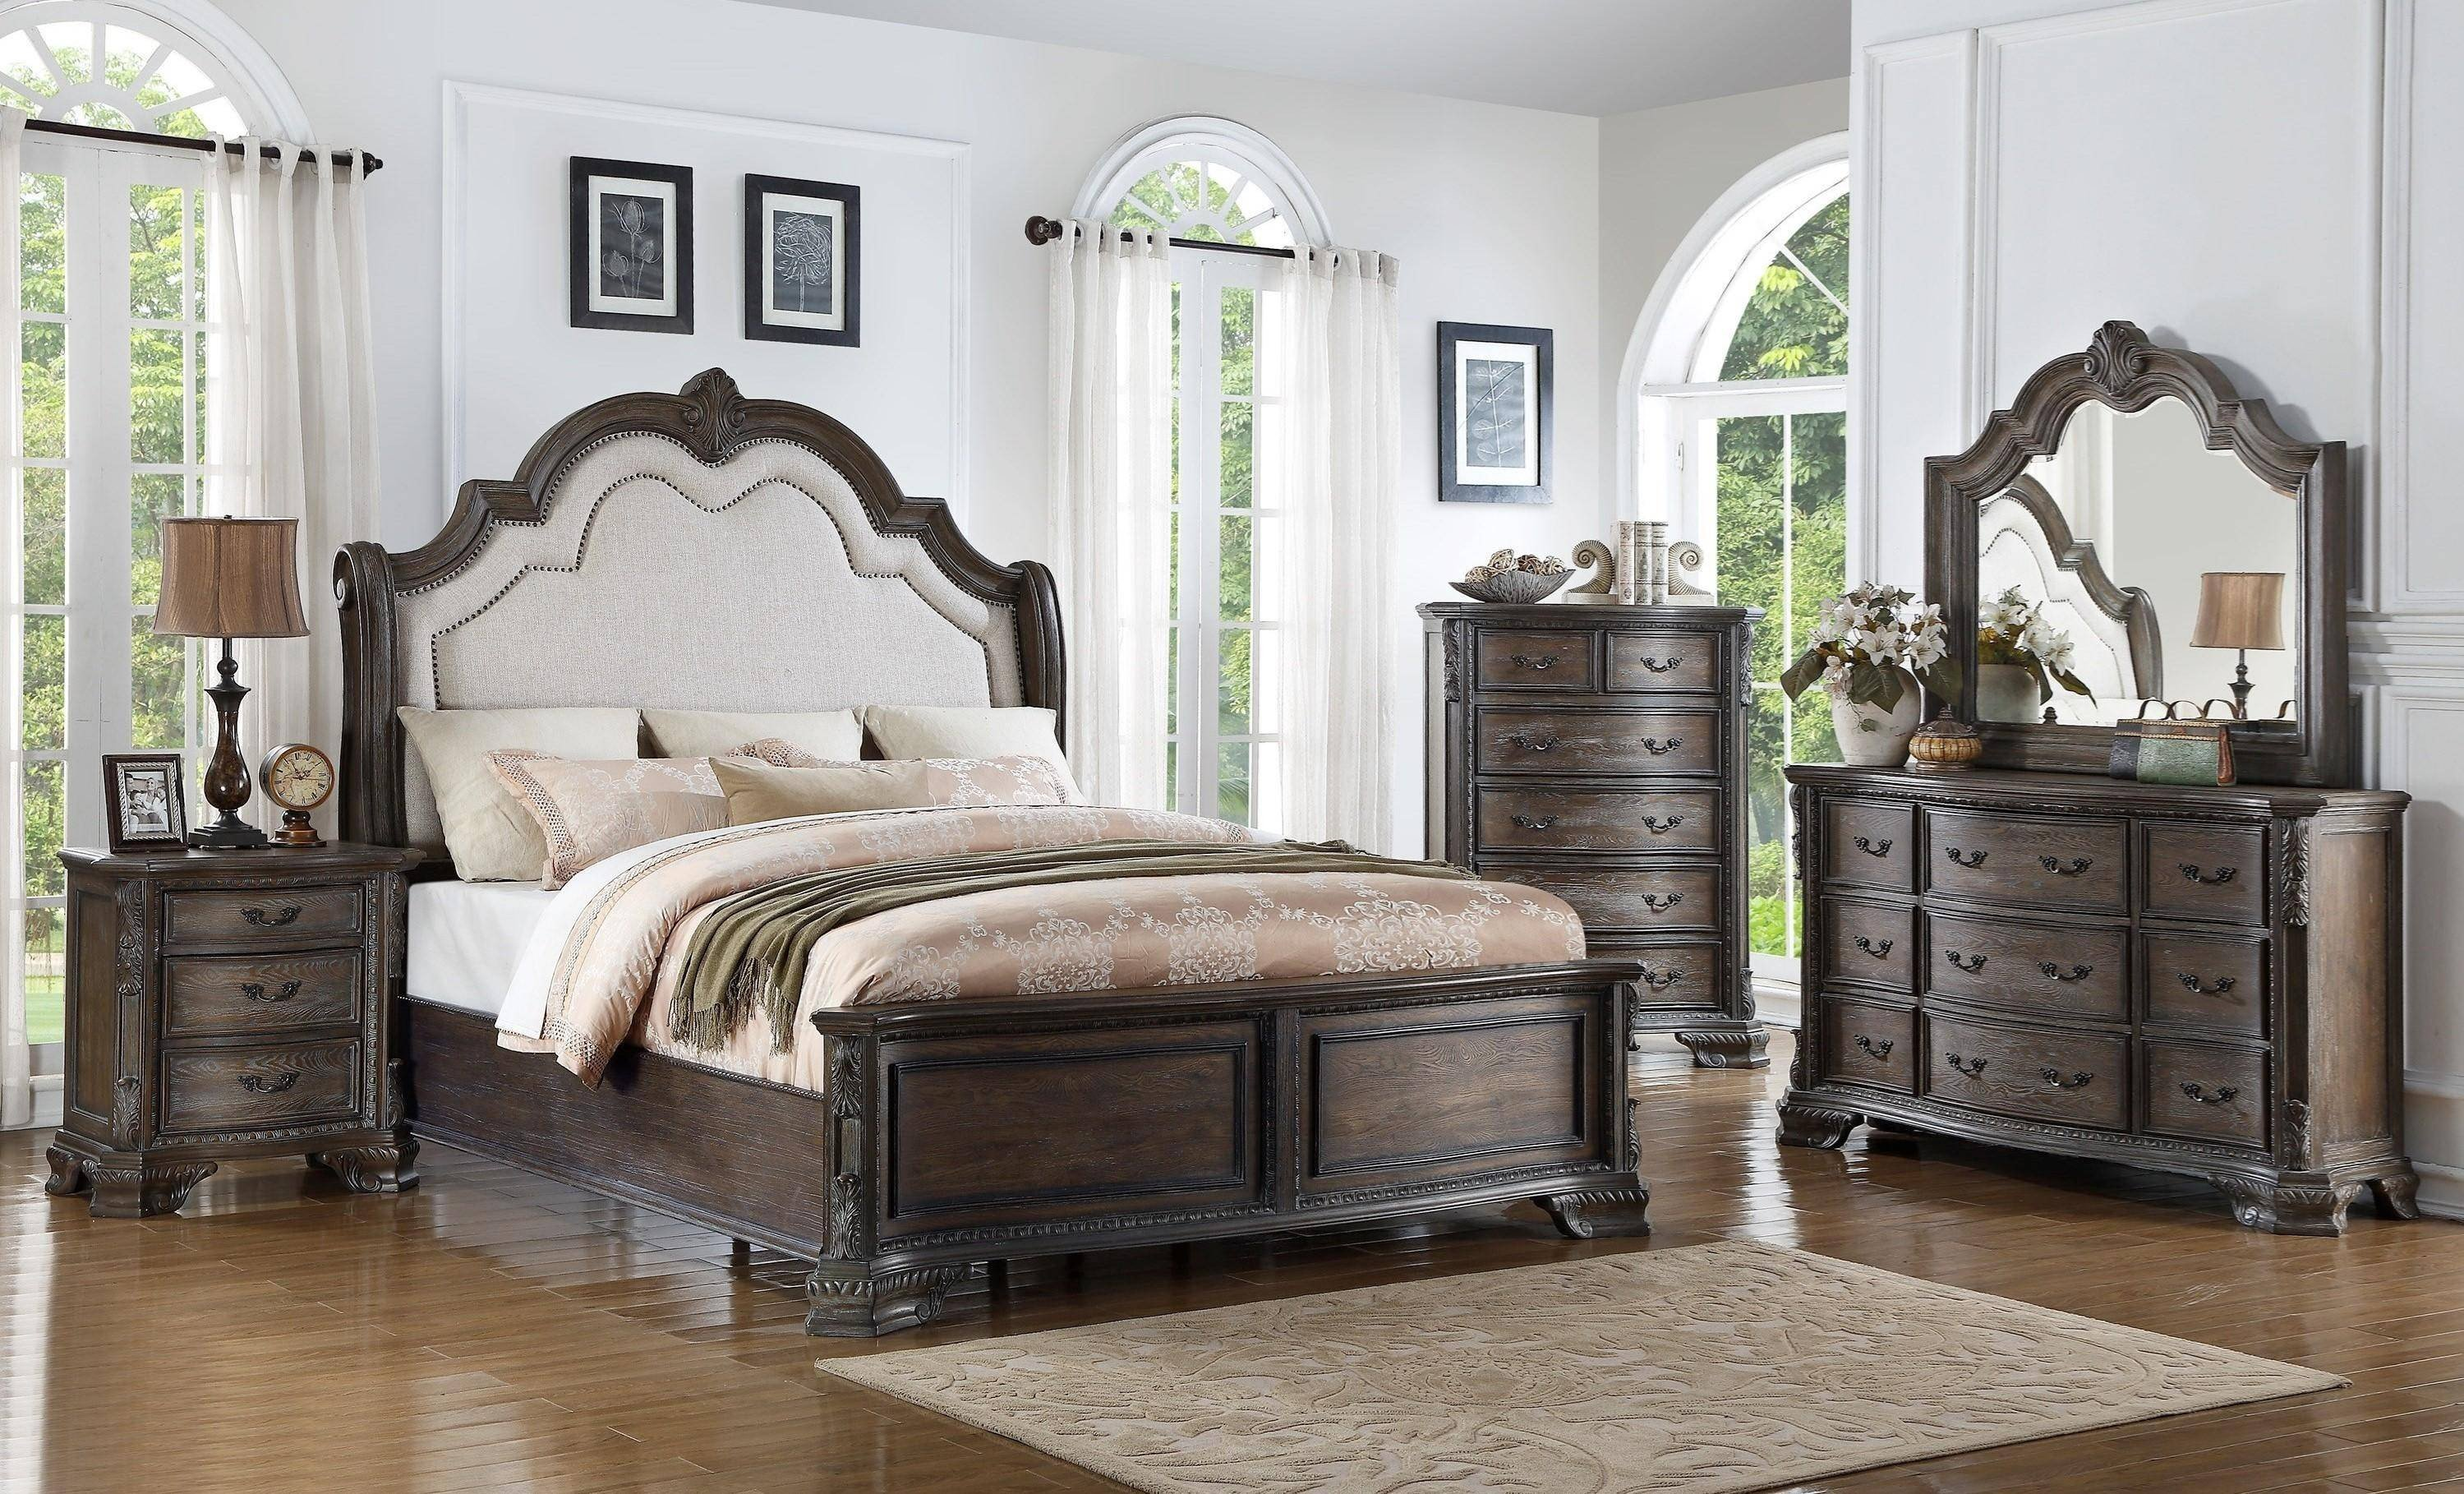 Rustic White Bedroom Set Fresh Crown Mark B1120 Sheffield Queen Panel Bed In Gray Fabric